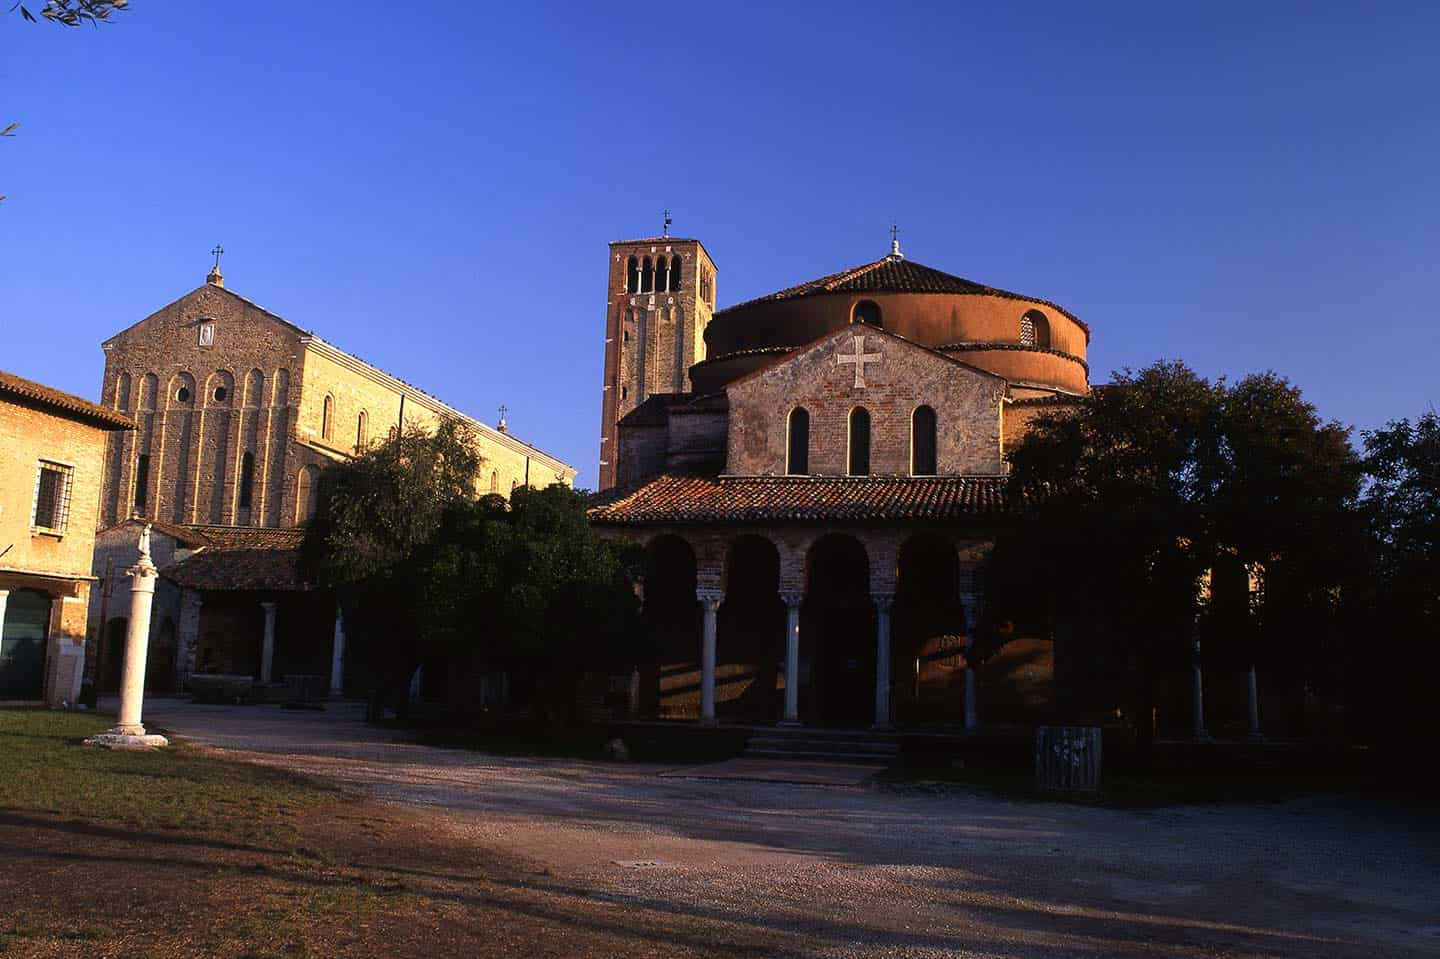 Torcello Image of Cathedral and Santa Fosca church on Torcello island, Venice